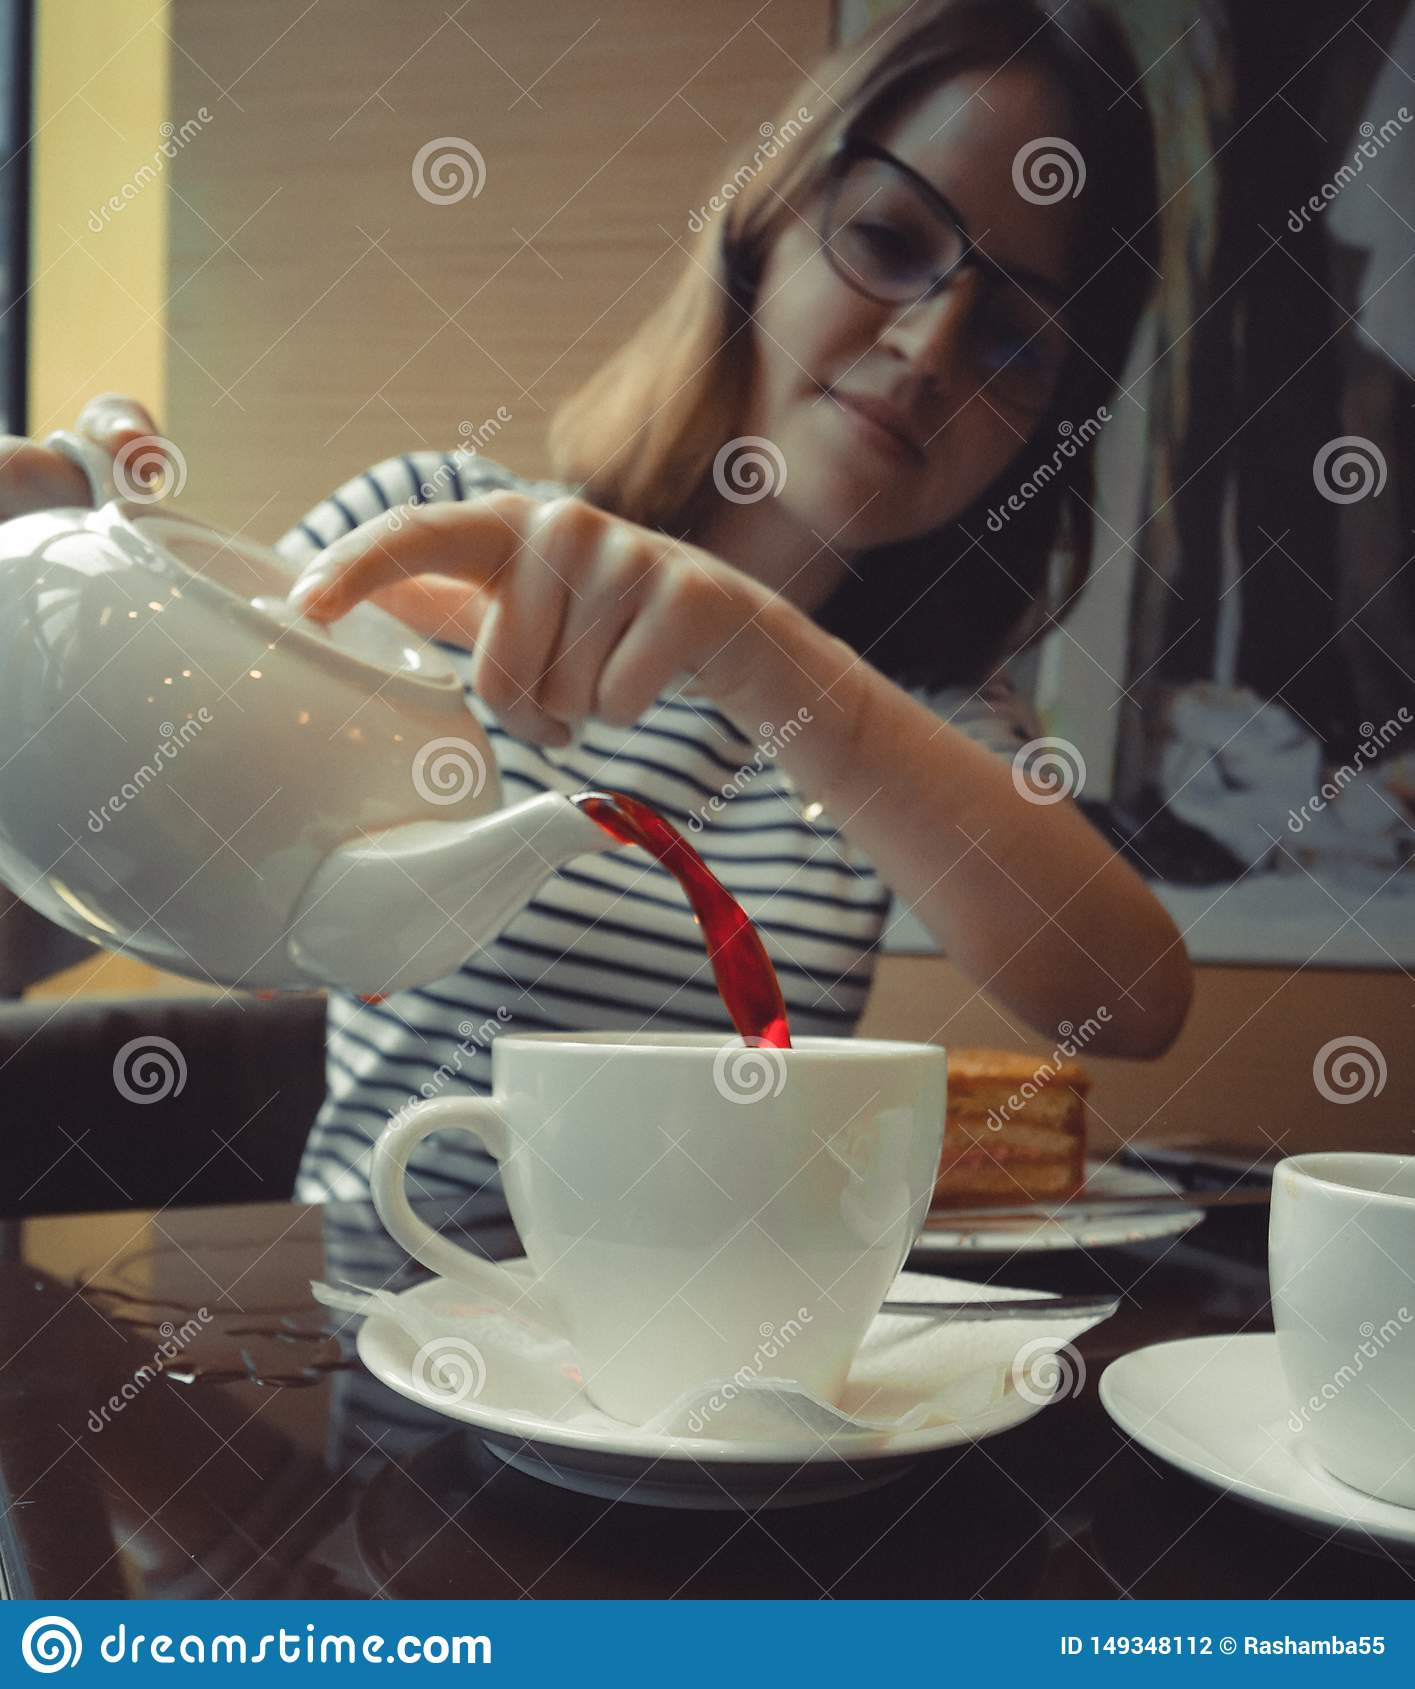 The girl pours tea into a cup from white kettle